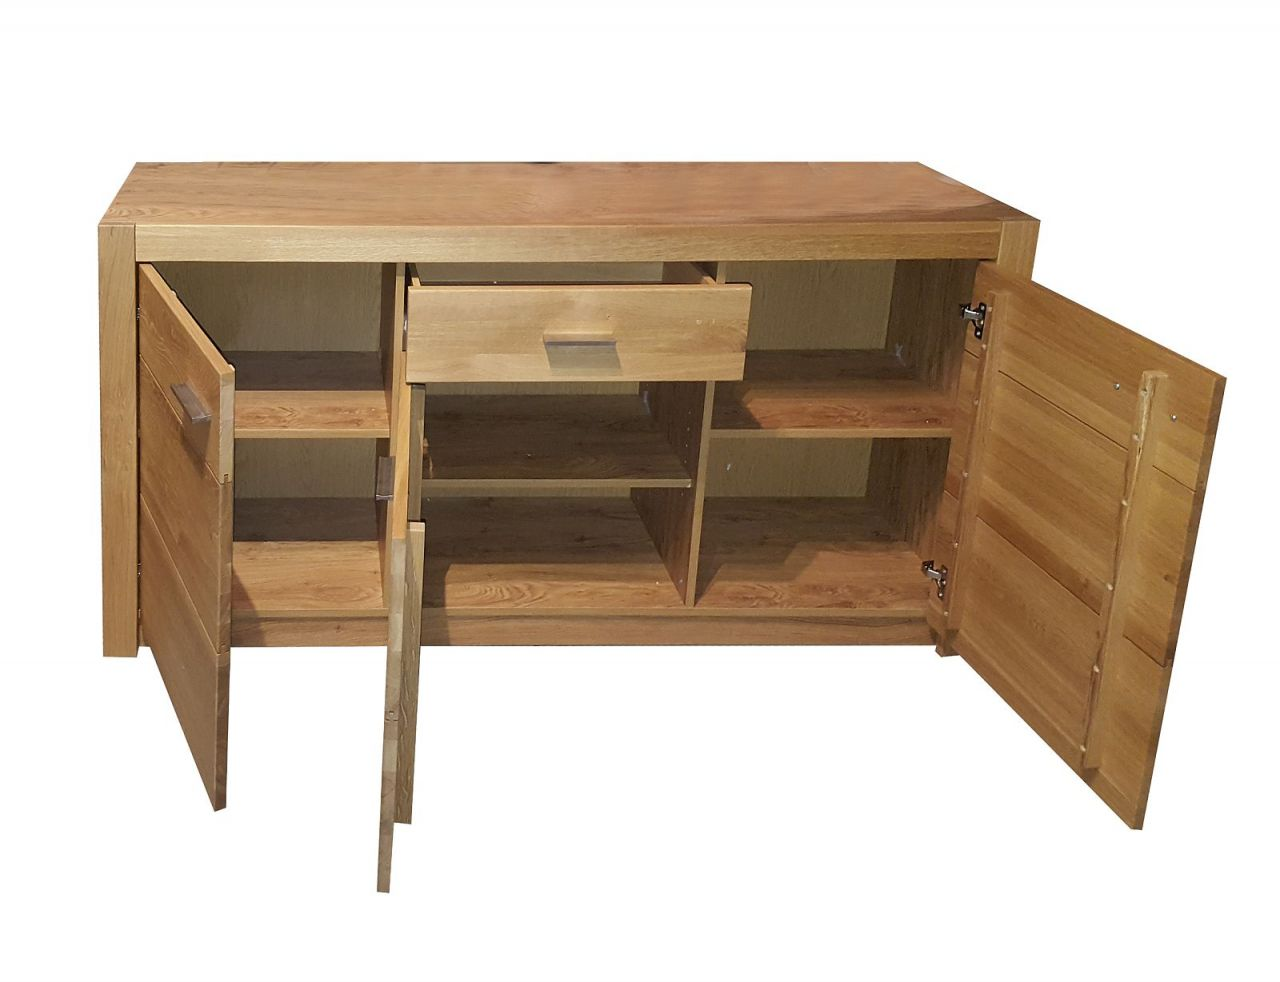 Massivholz Sideboard Sideboard Massivholz Eiche Interesting Sideboard